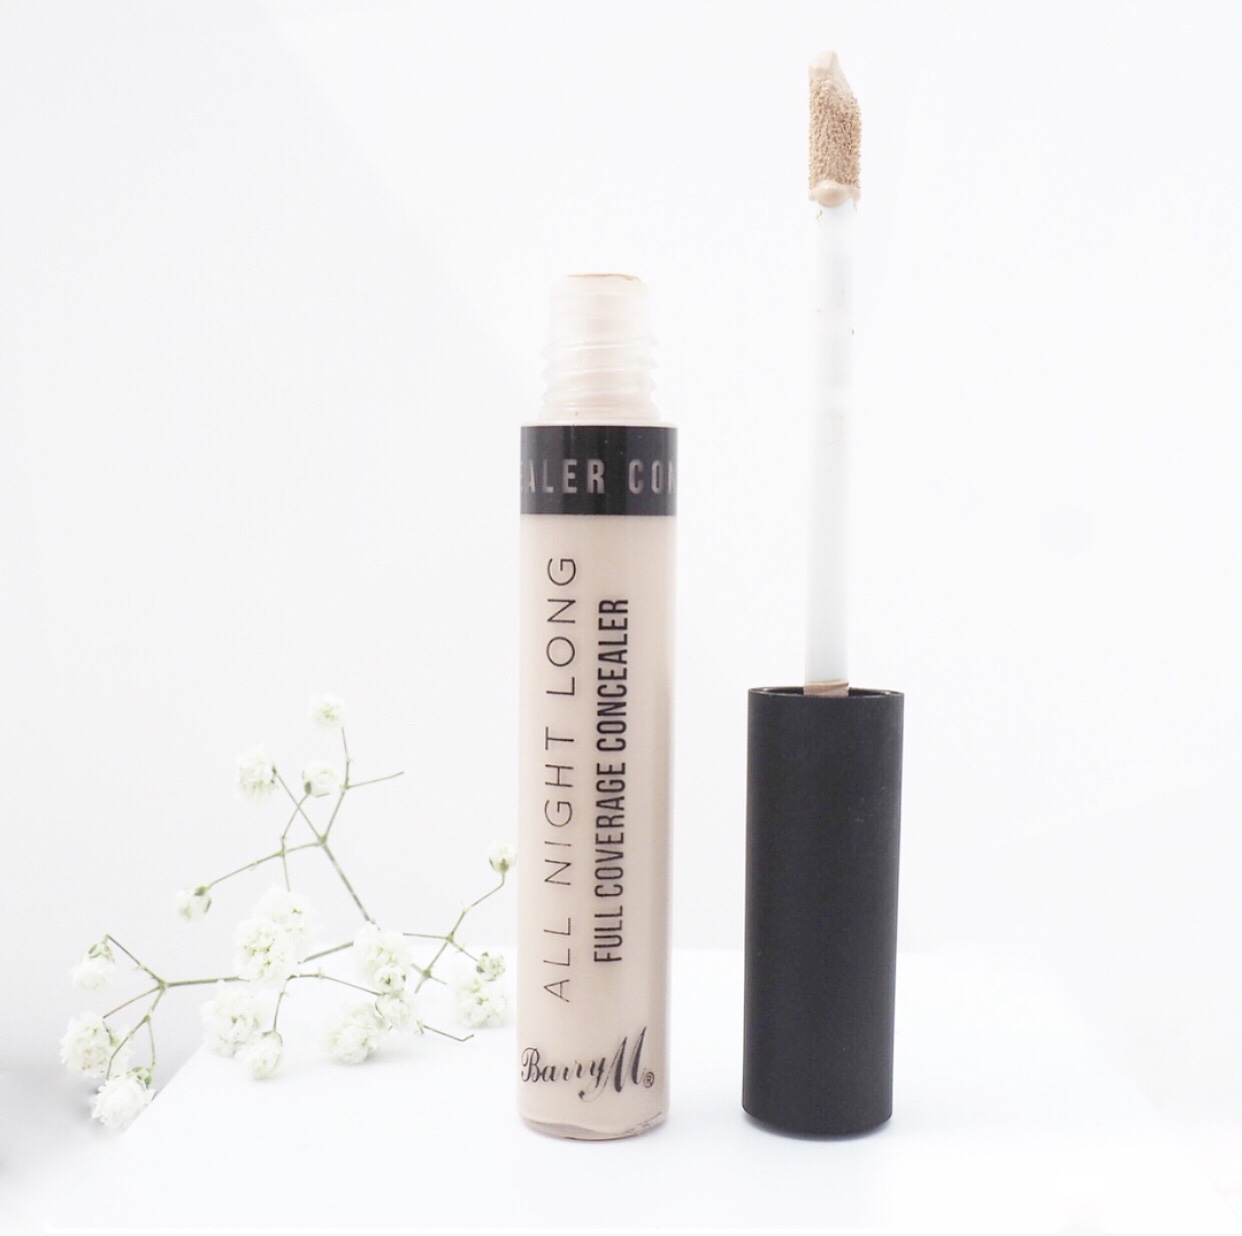 Barry M All Night Long Full Coverage Concealer Review